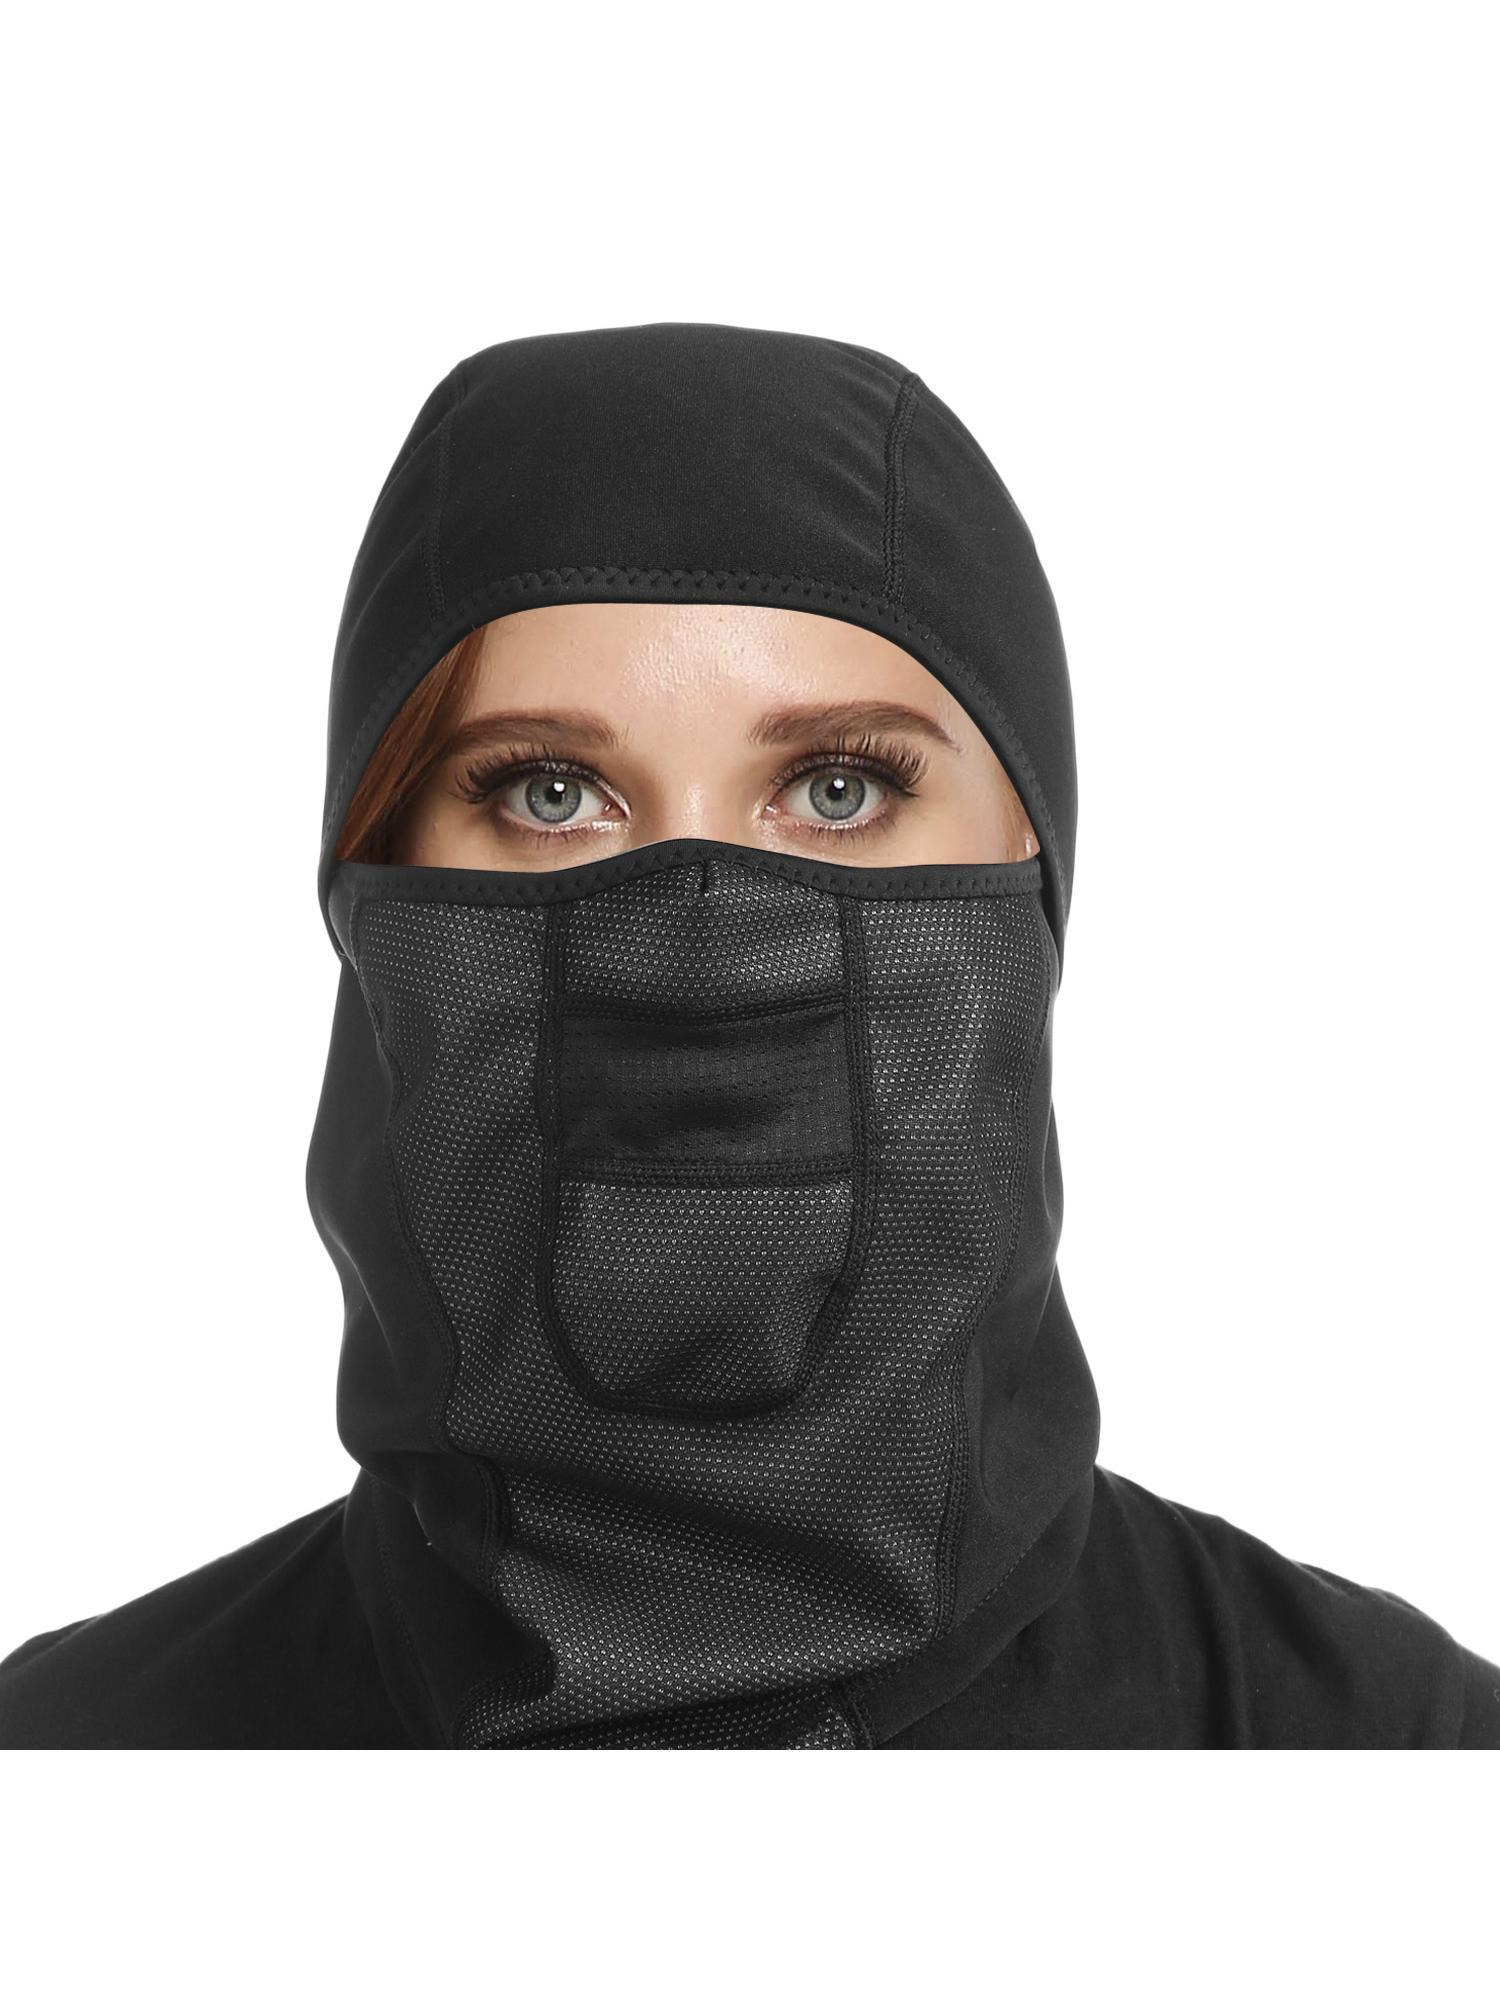 Outdoor Wind-Resistant Face Mask Hinged Fleece Balaclava Ski Neck Protection MAEHE by